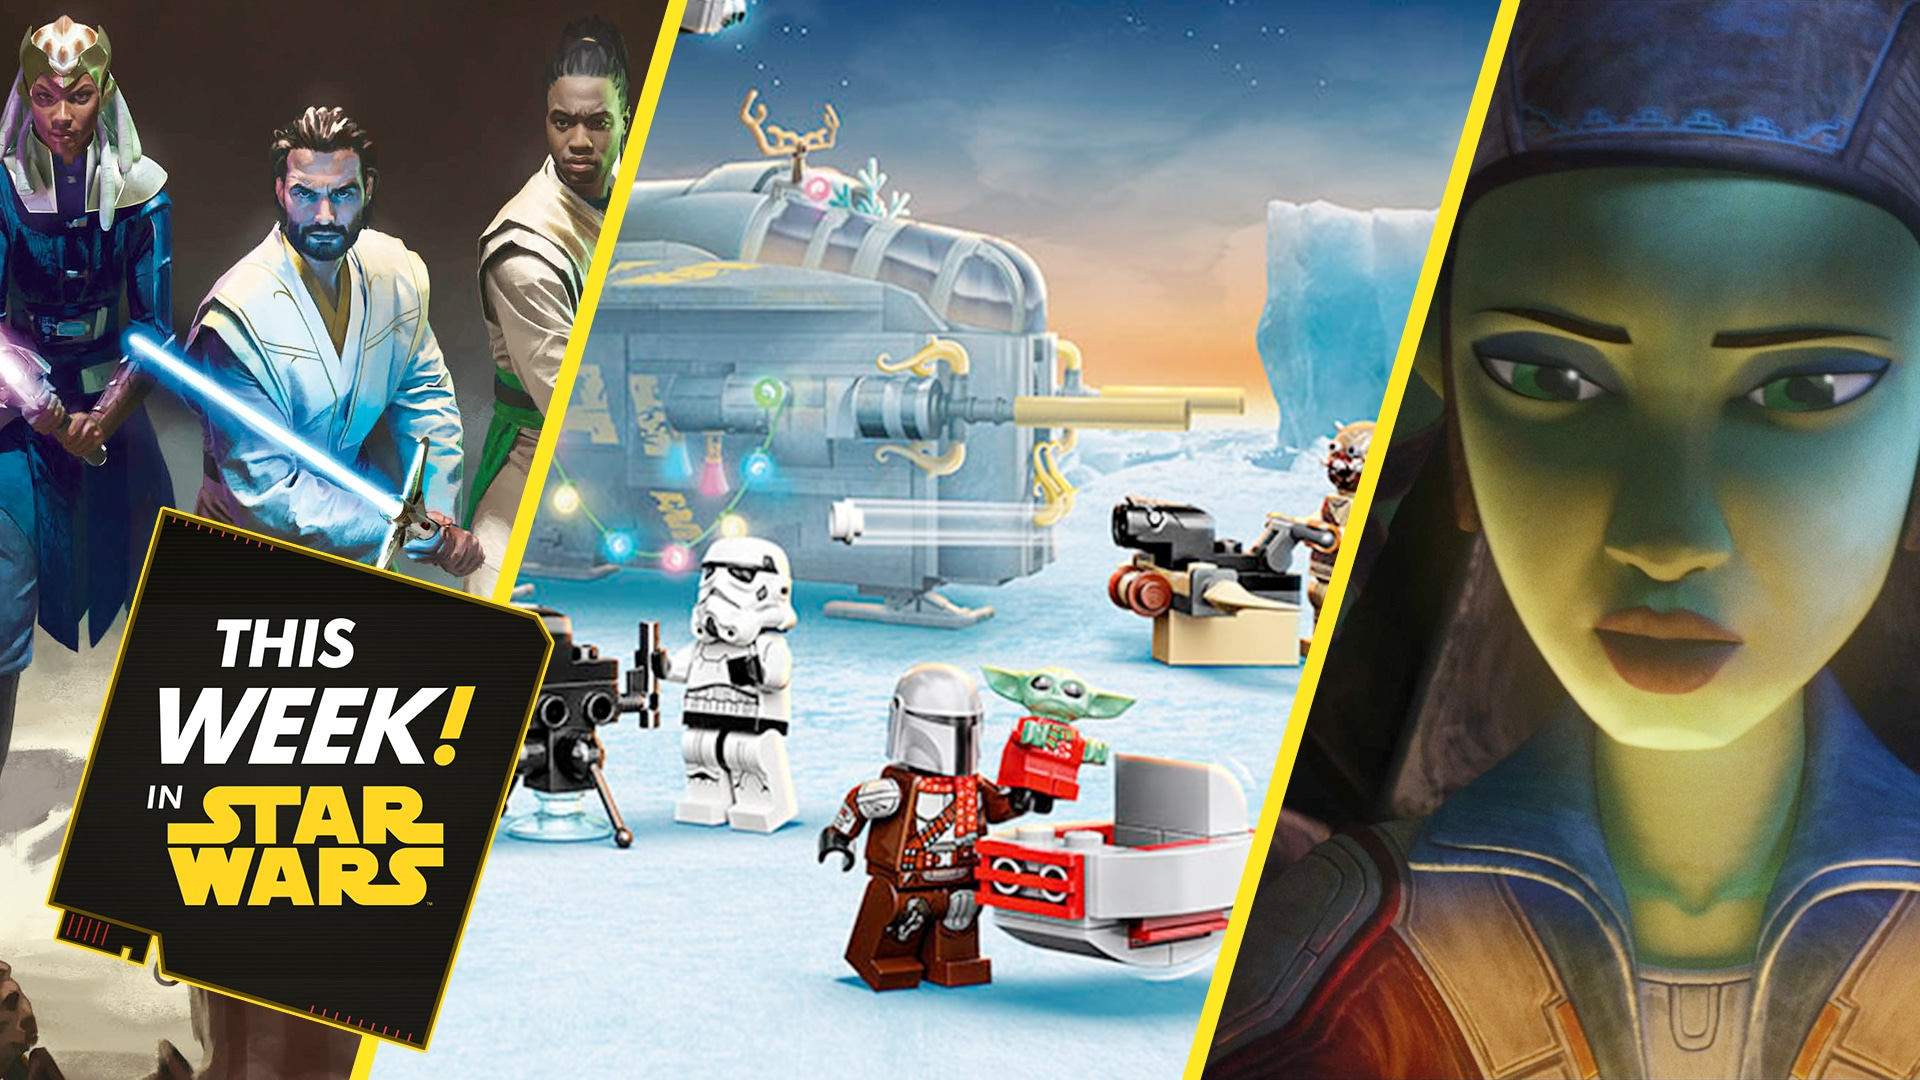 LEGO Counts Down to the Holidays, Vanessa Marshall Chats Hera Syndulla, and More!